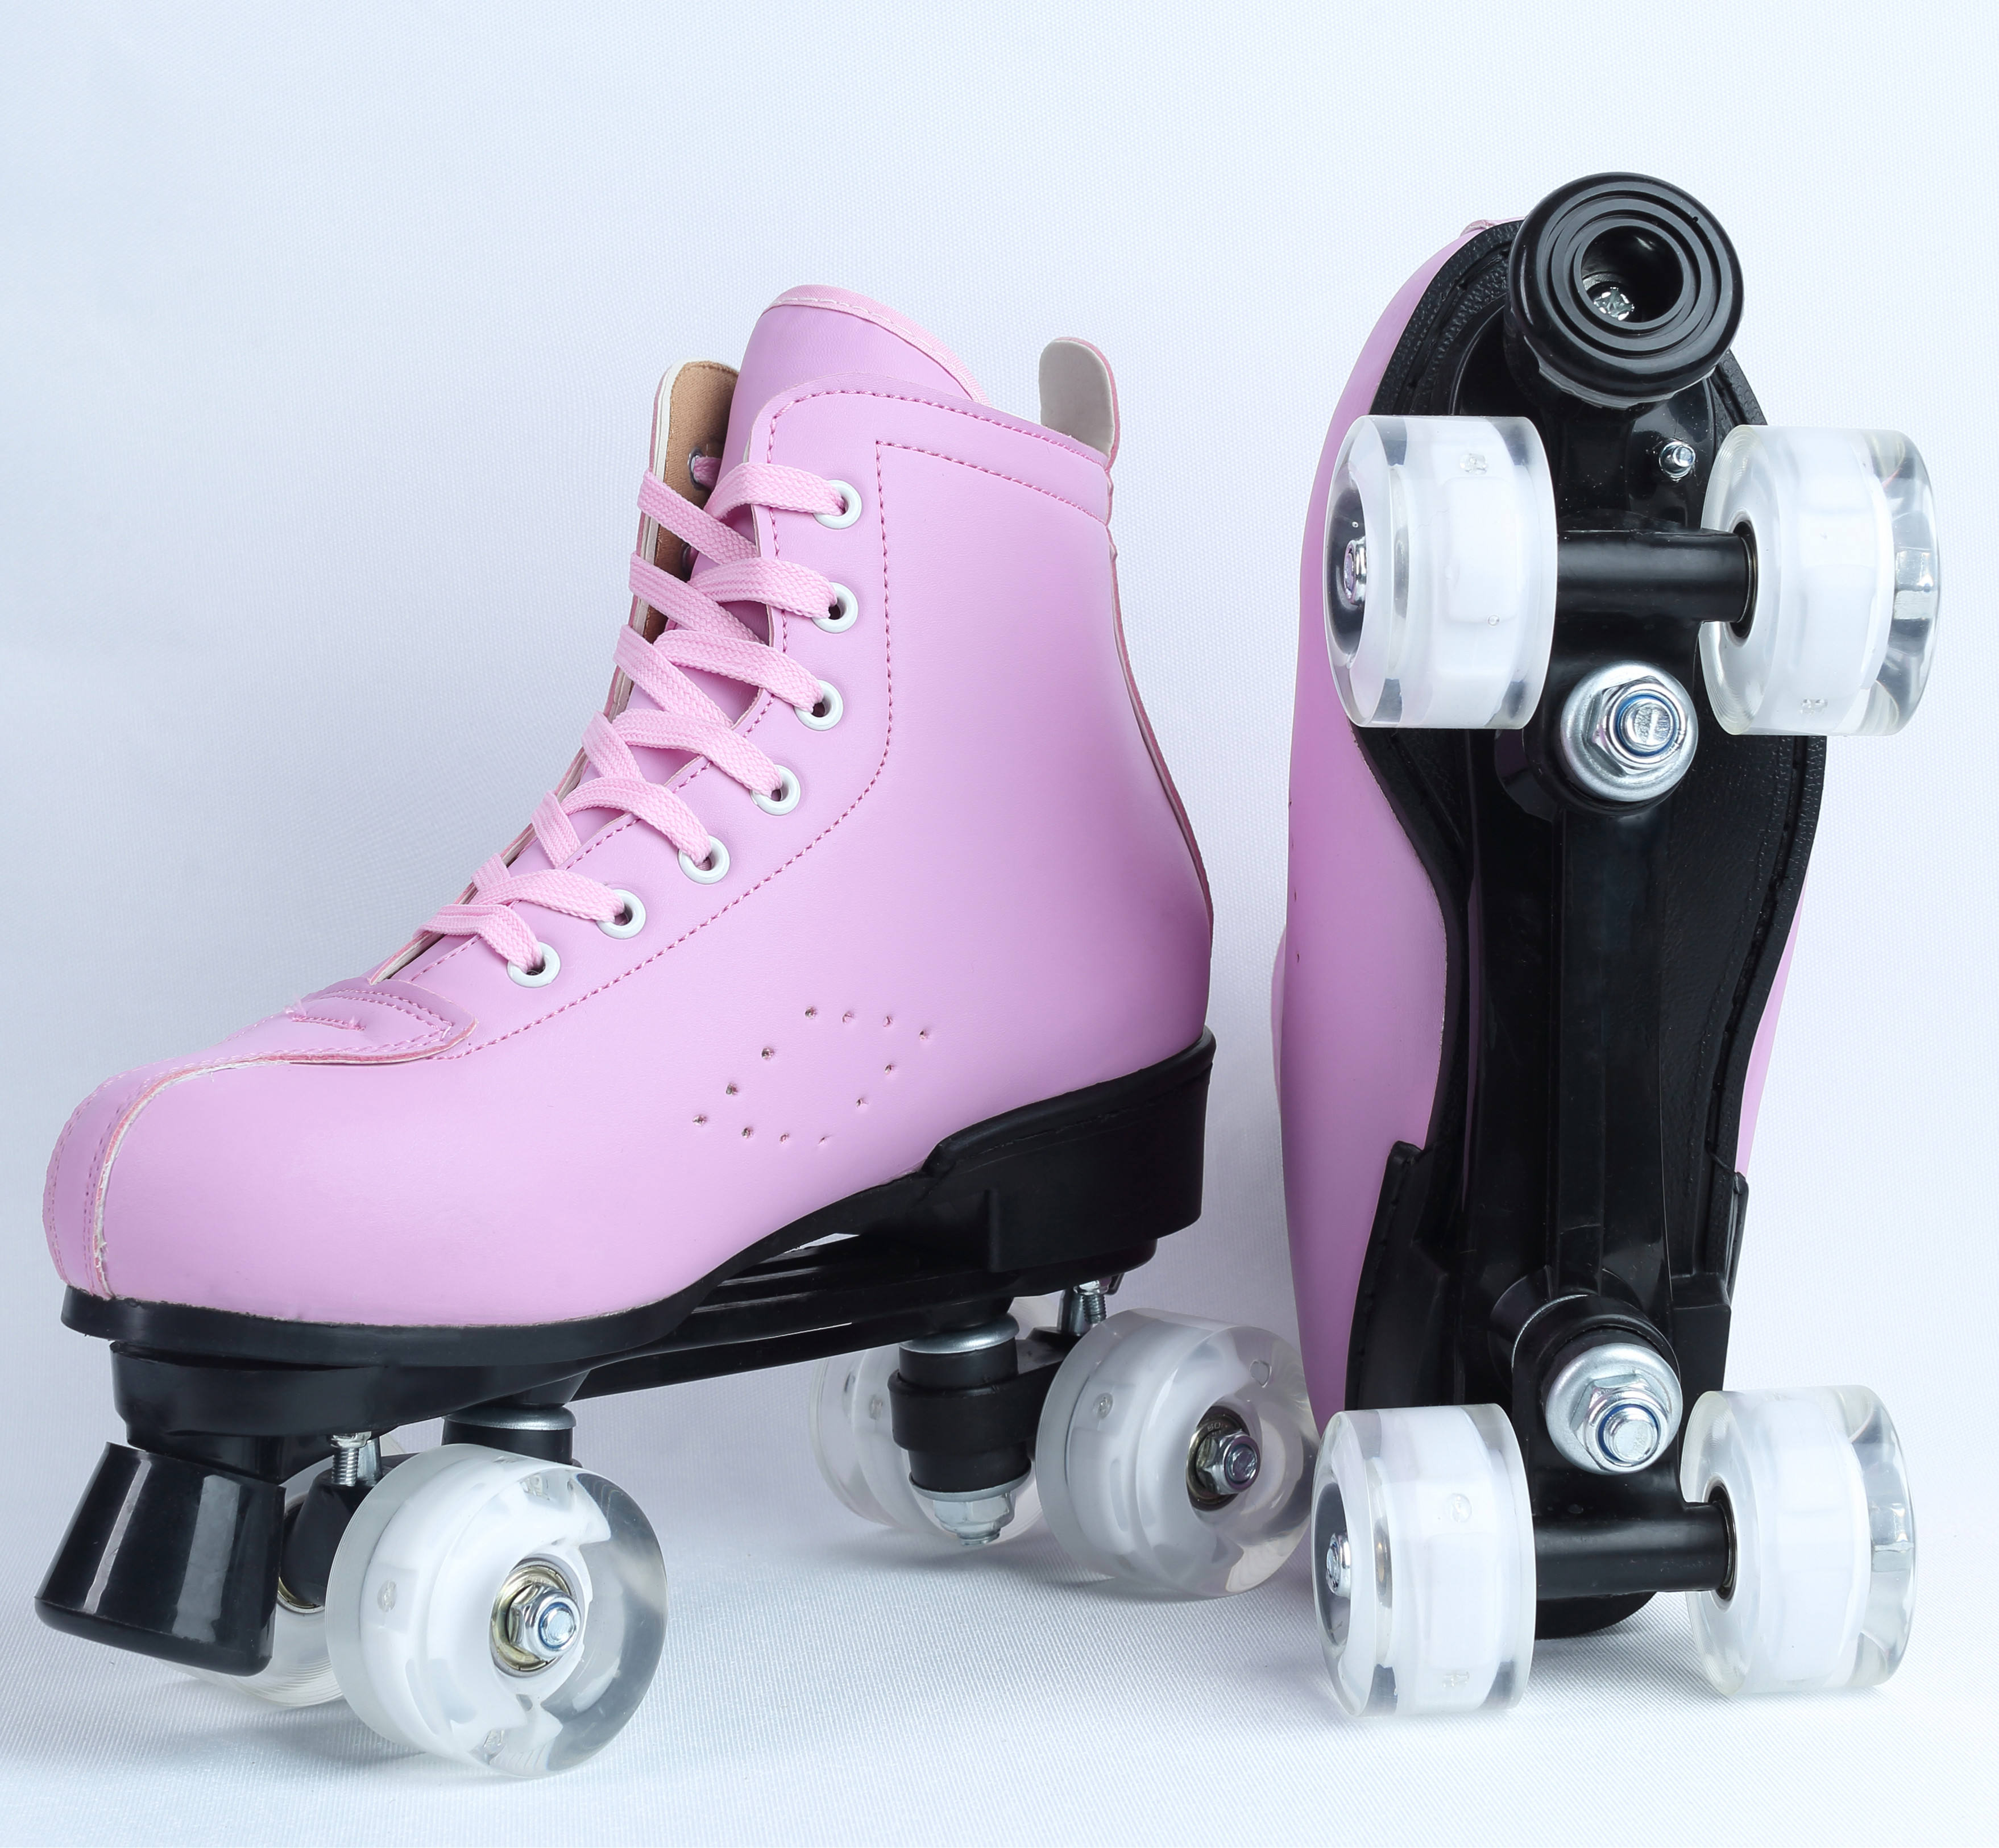 Factory wholesale and retail high - quality double - row skates, skating shoes for girls